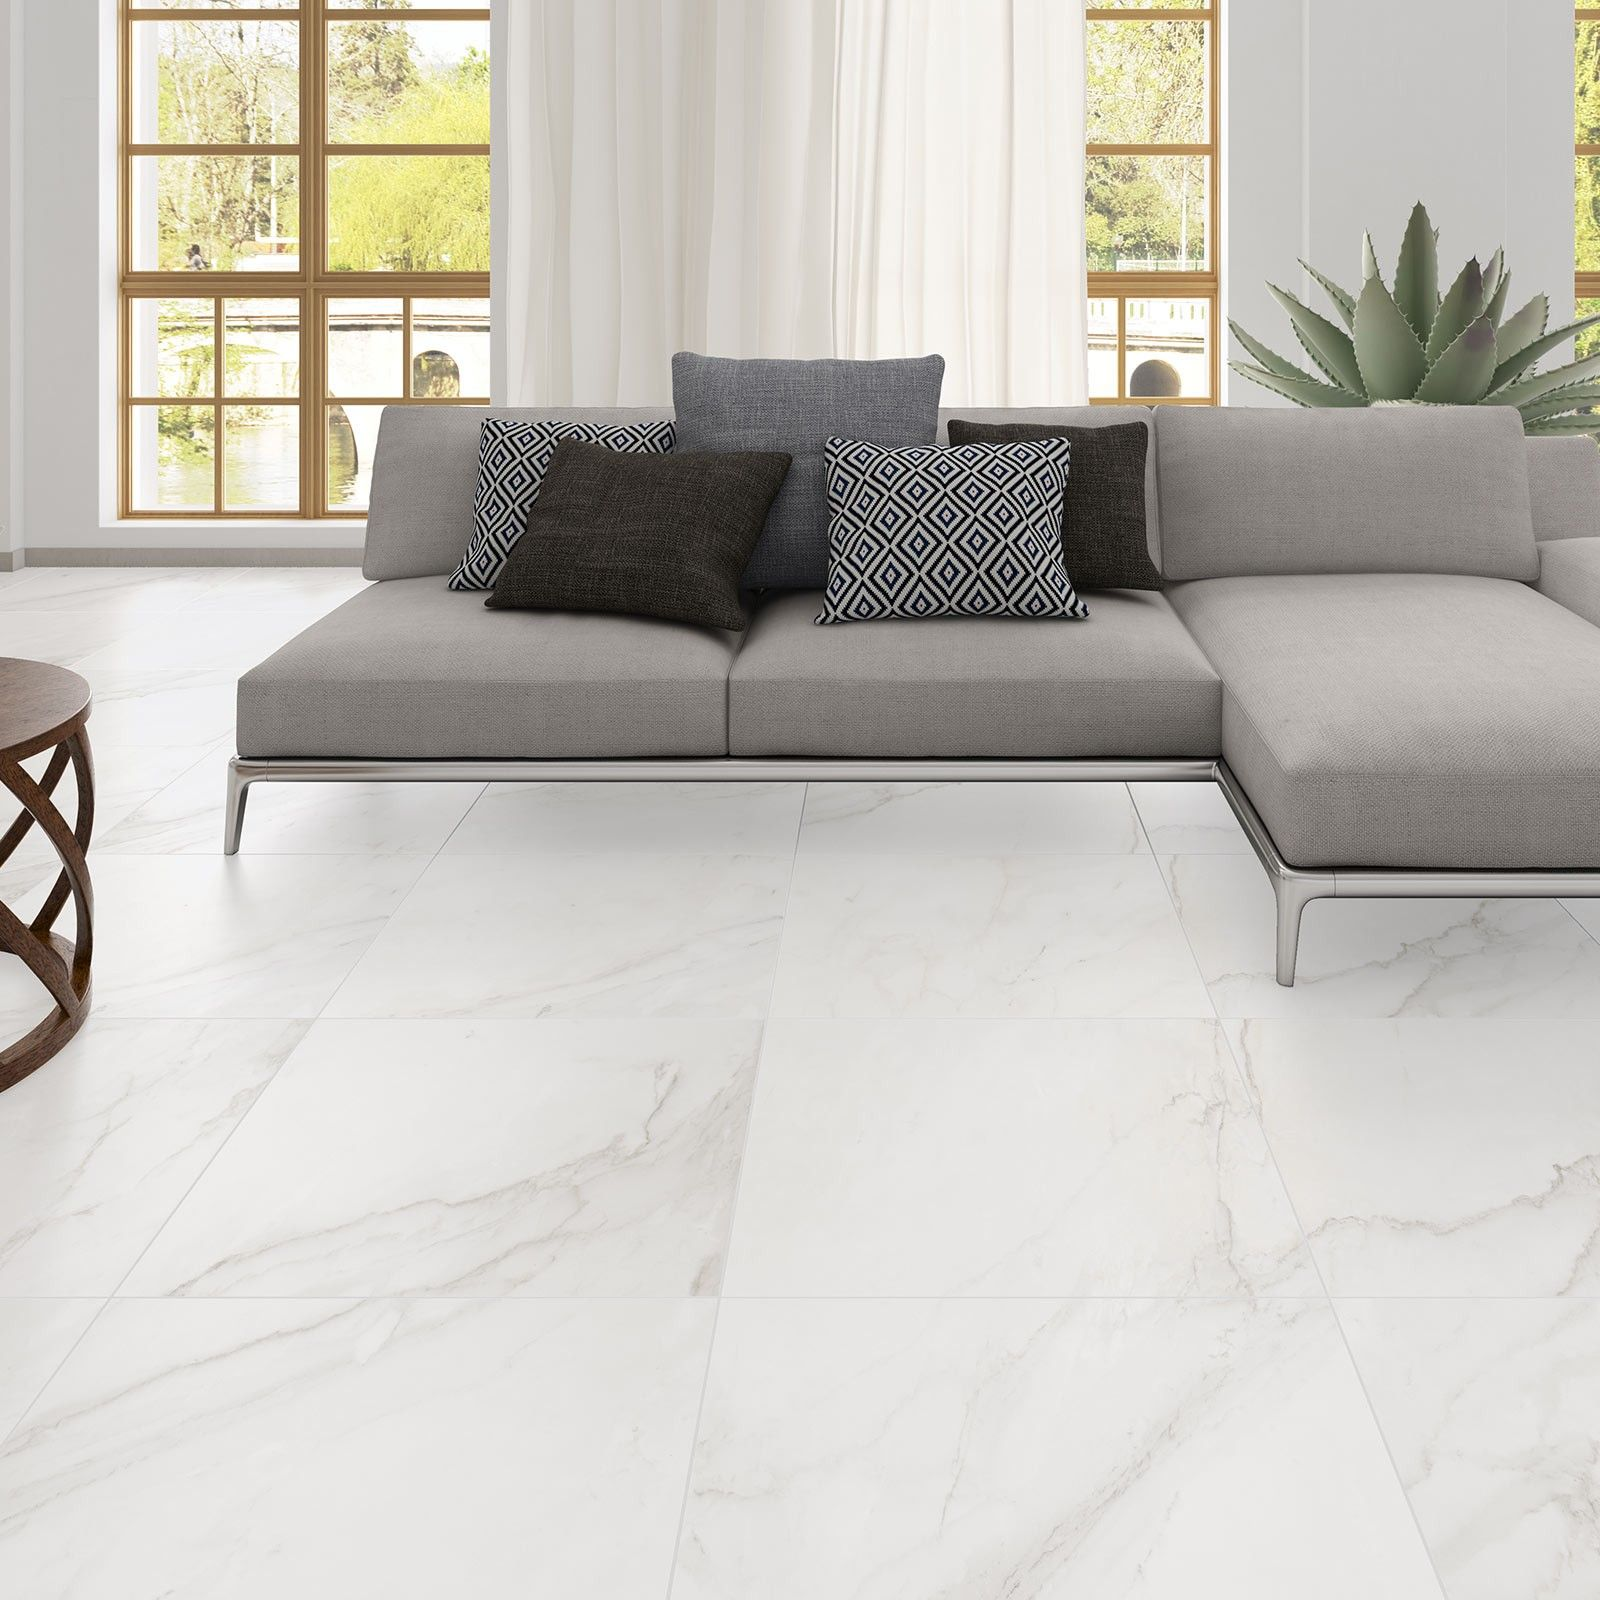 Building a stylish living room is simpler than you think white porcelain floor tile is fired at extremely high temperatures harder and stronger than ceramic tile and easy to clean as bathroom tile designs dailygadgetfo Gallery